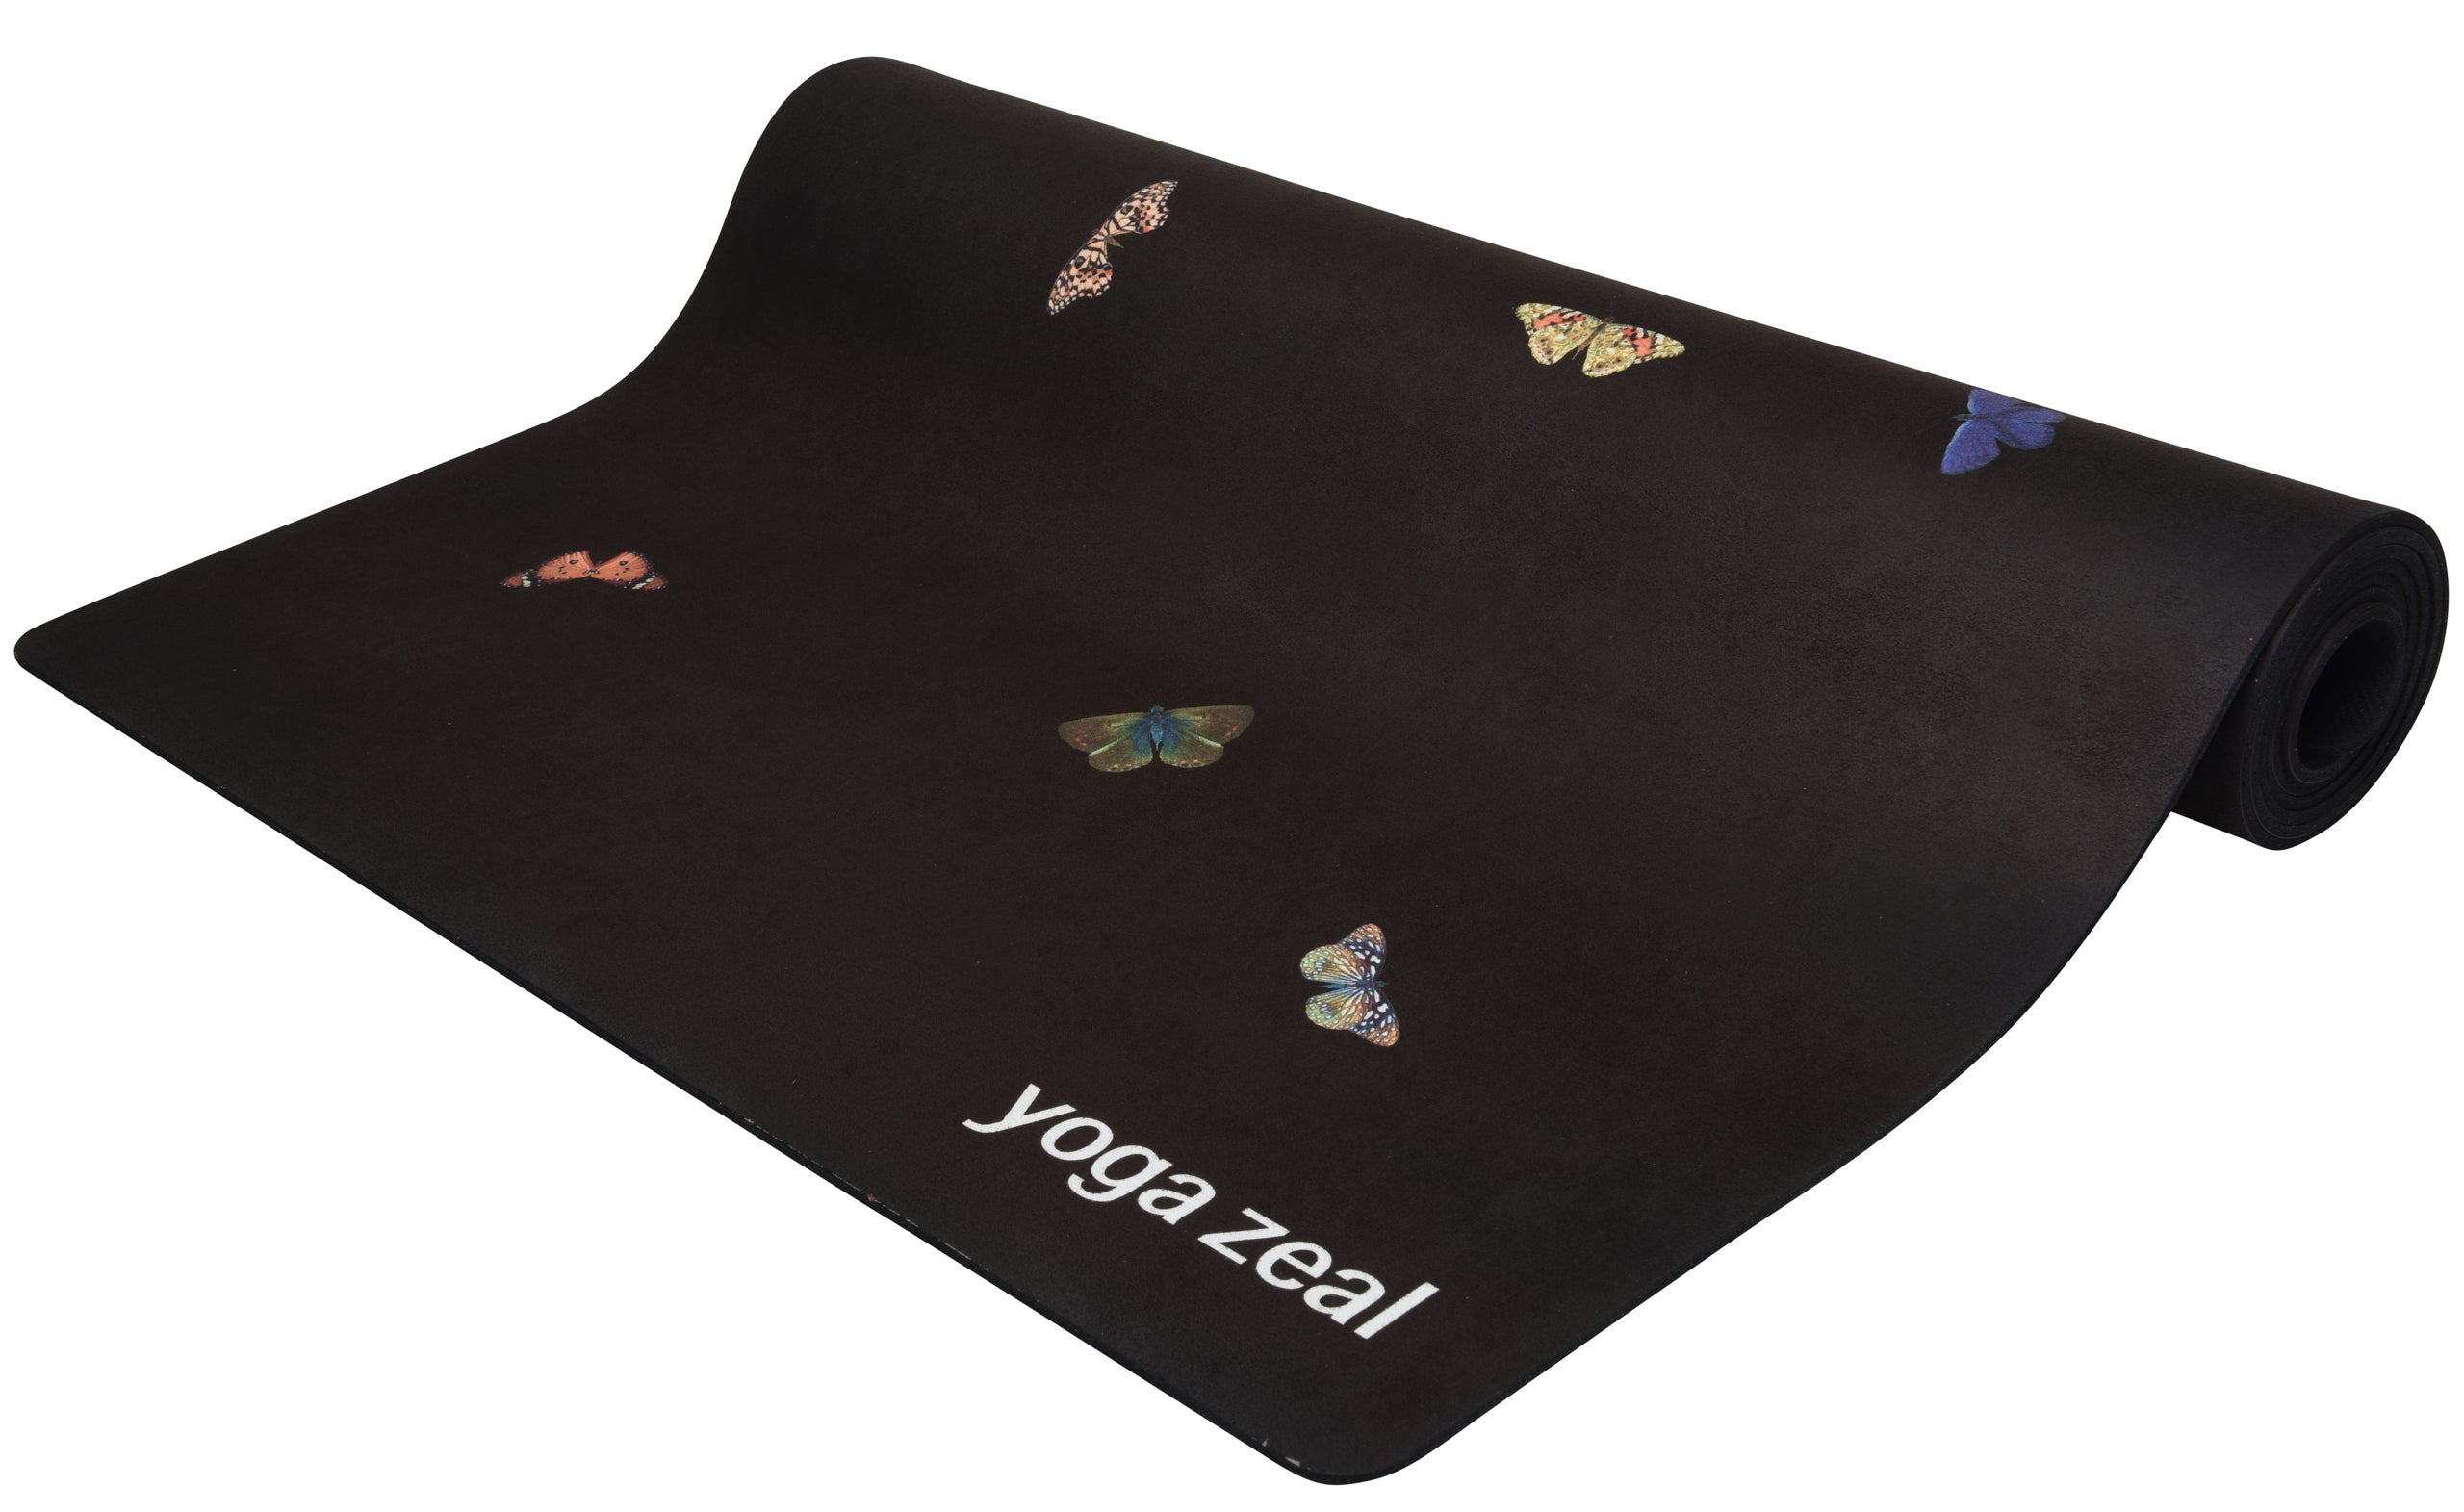 Buttefly Yoga Mat (Black)